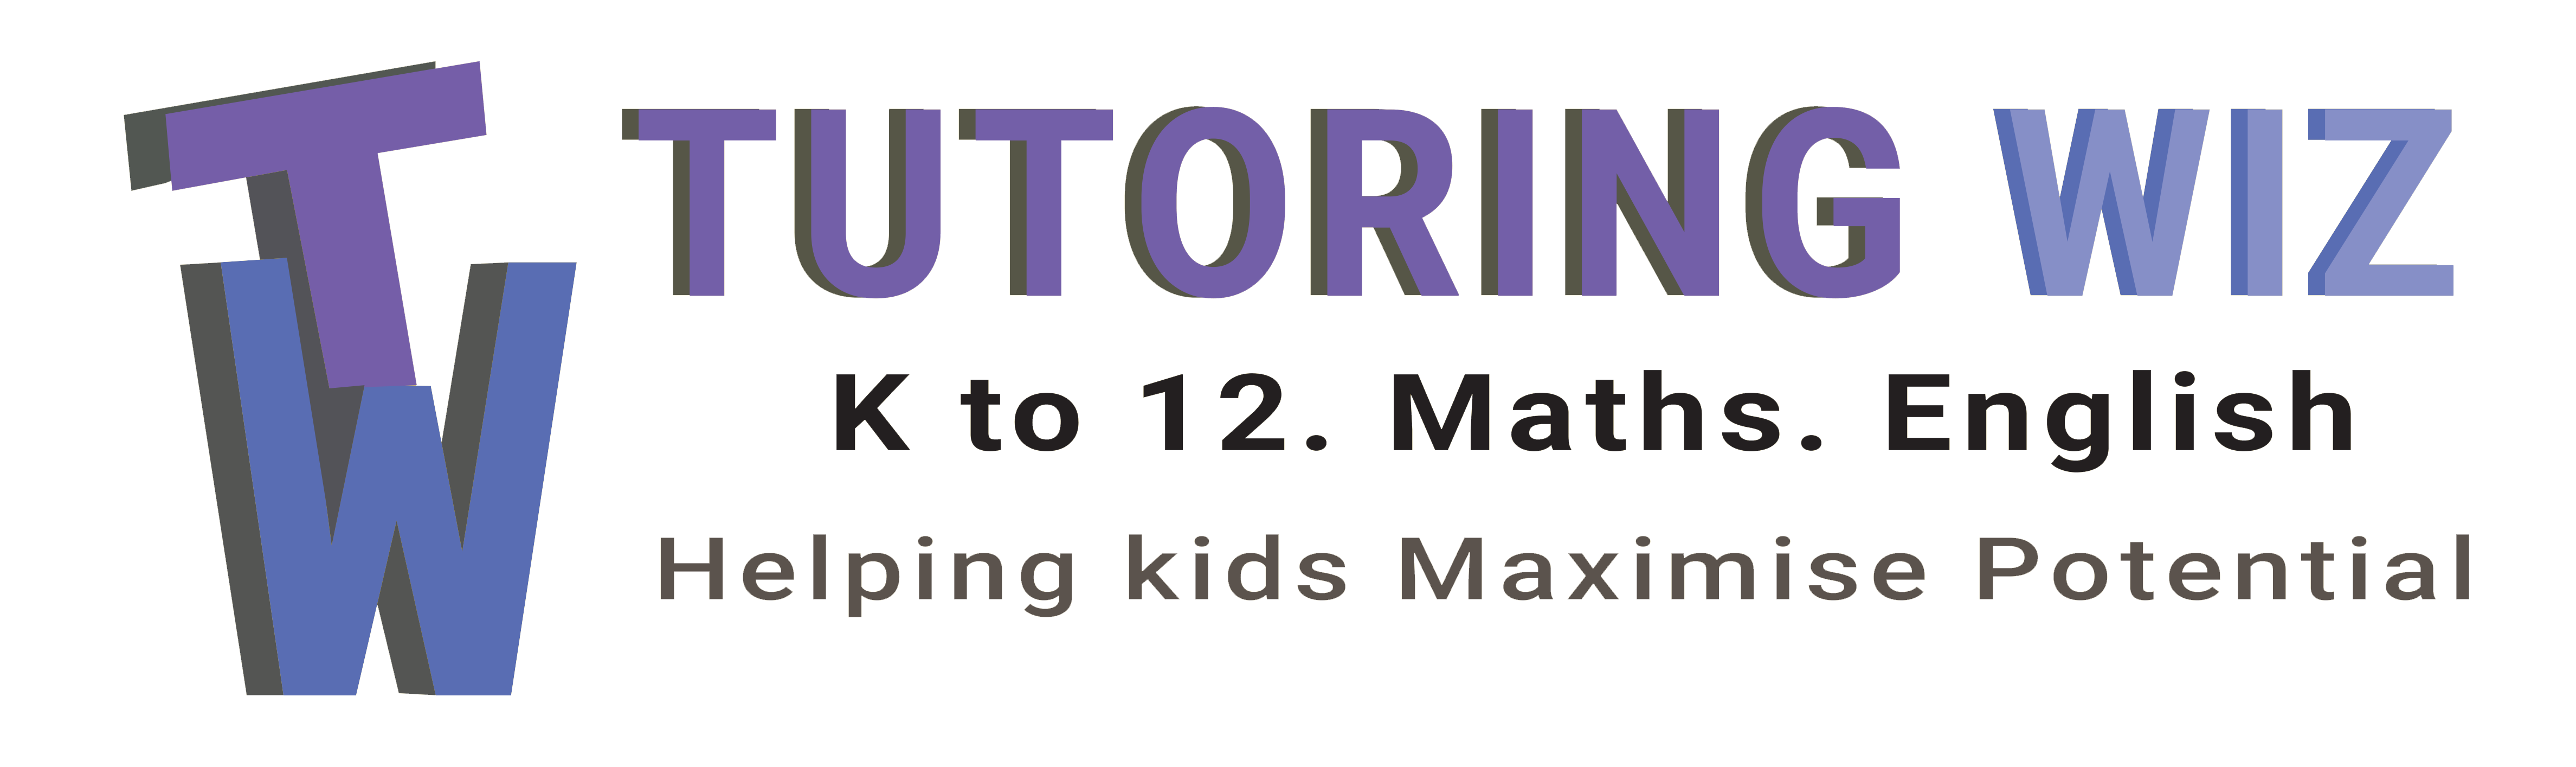 Tutoring Wiz -